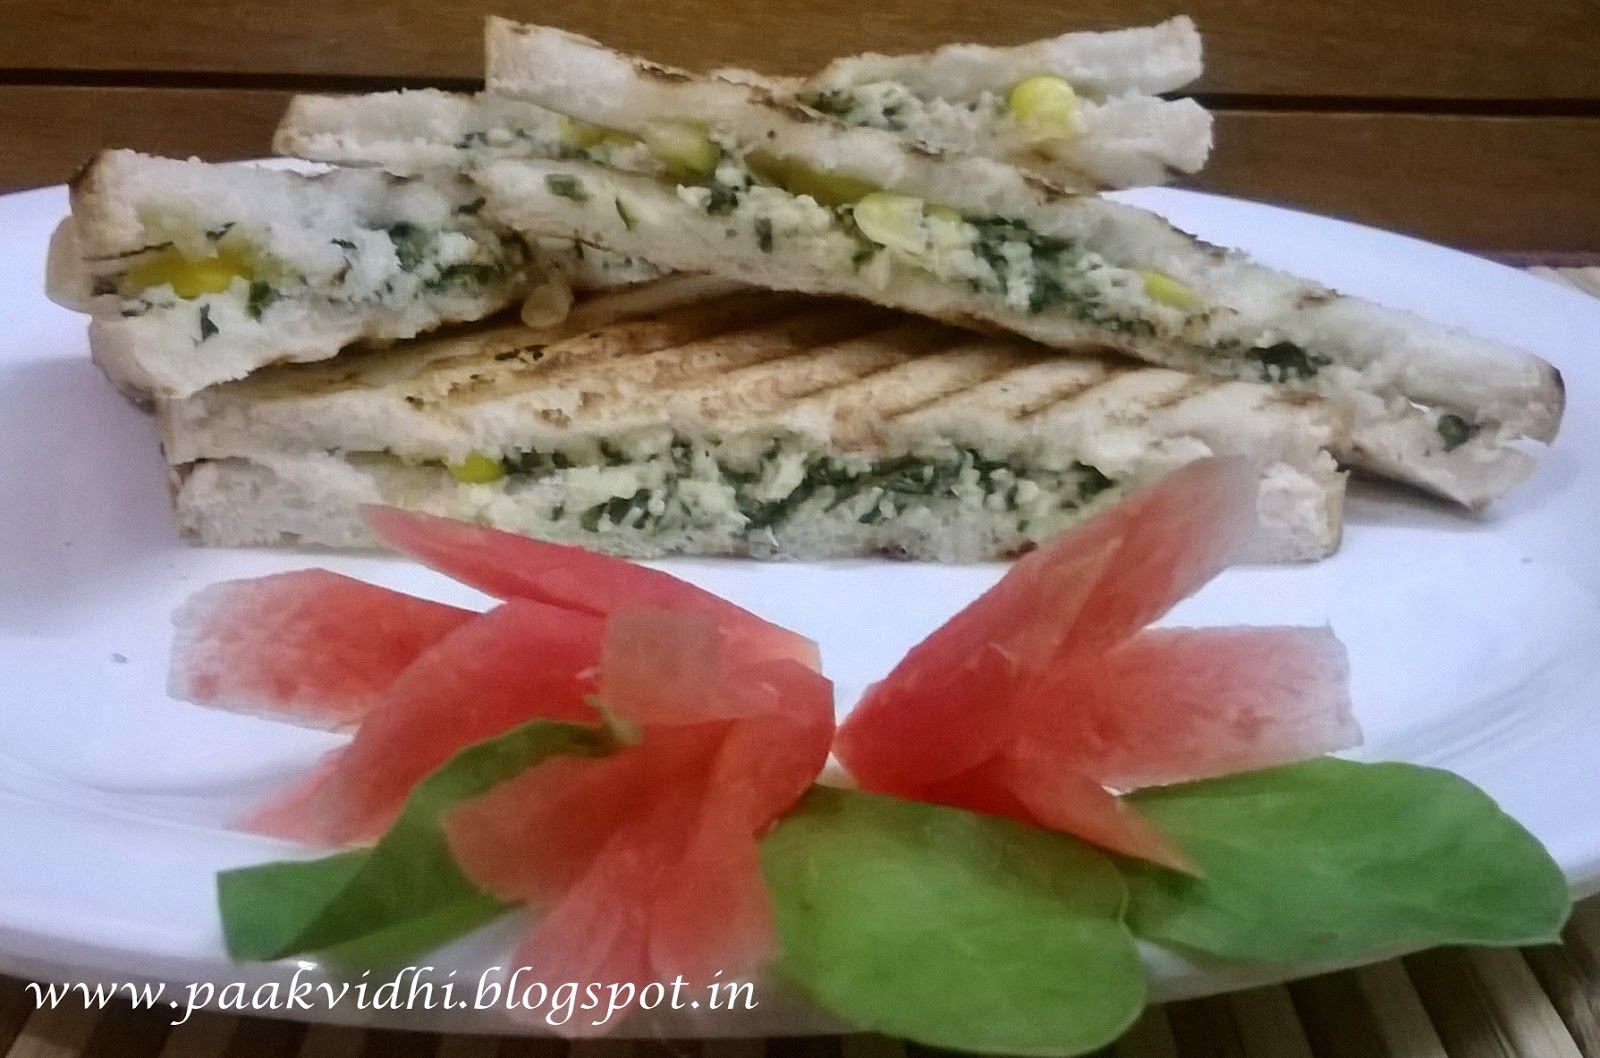 http://paakvidhi.blogspot.in/2014/04/corn-spinach-sandwich.html